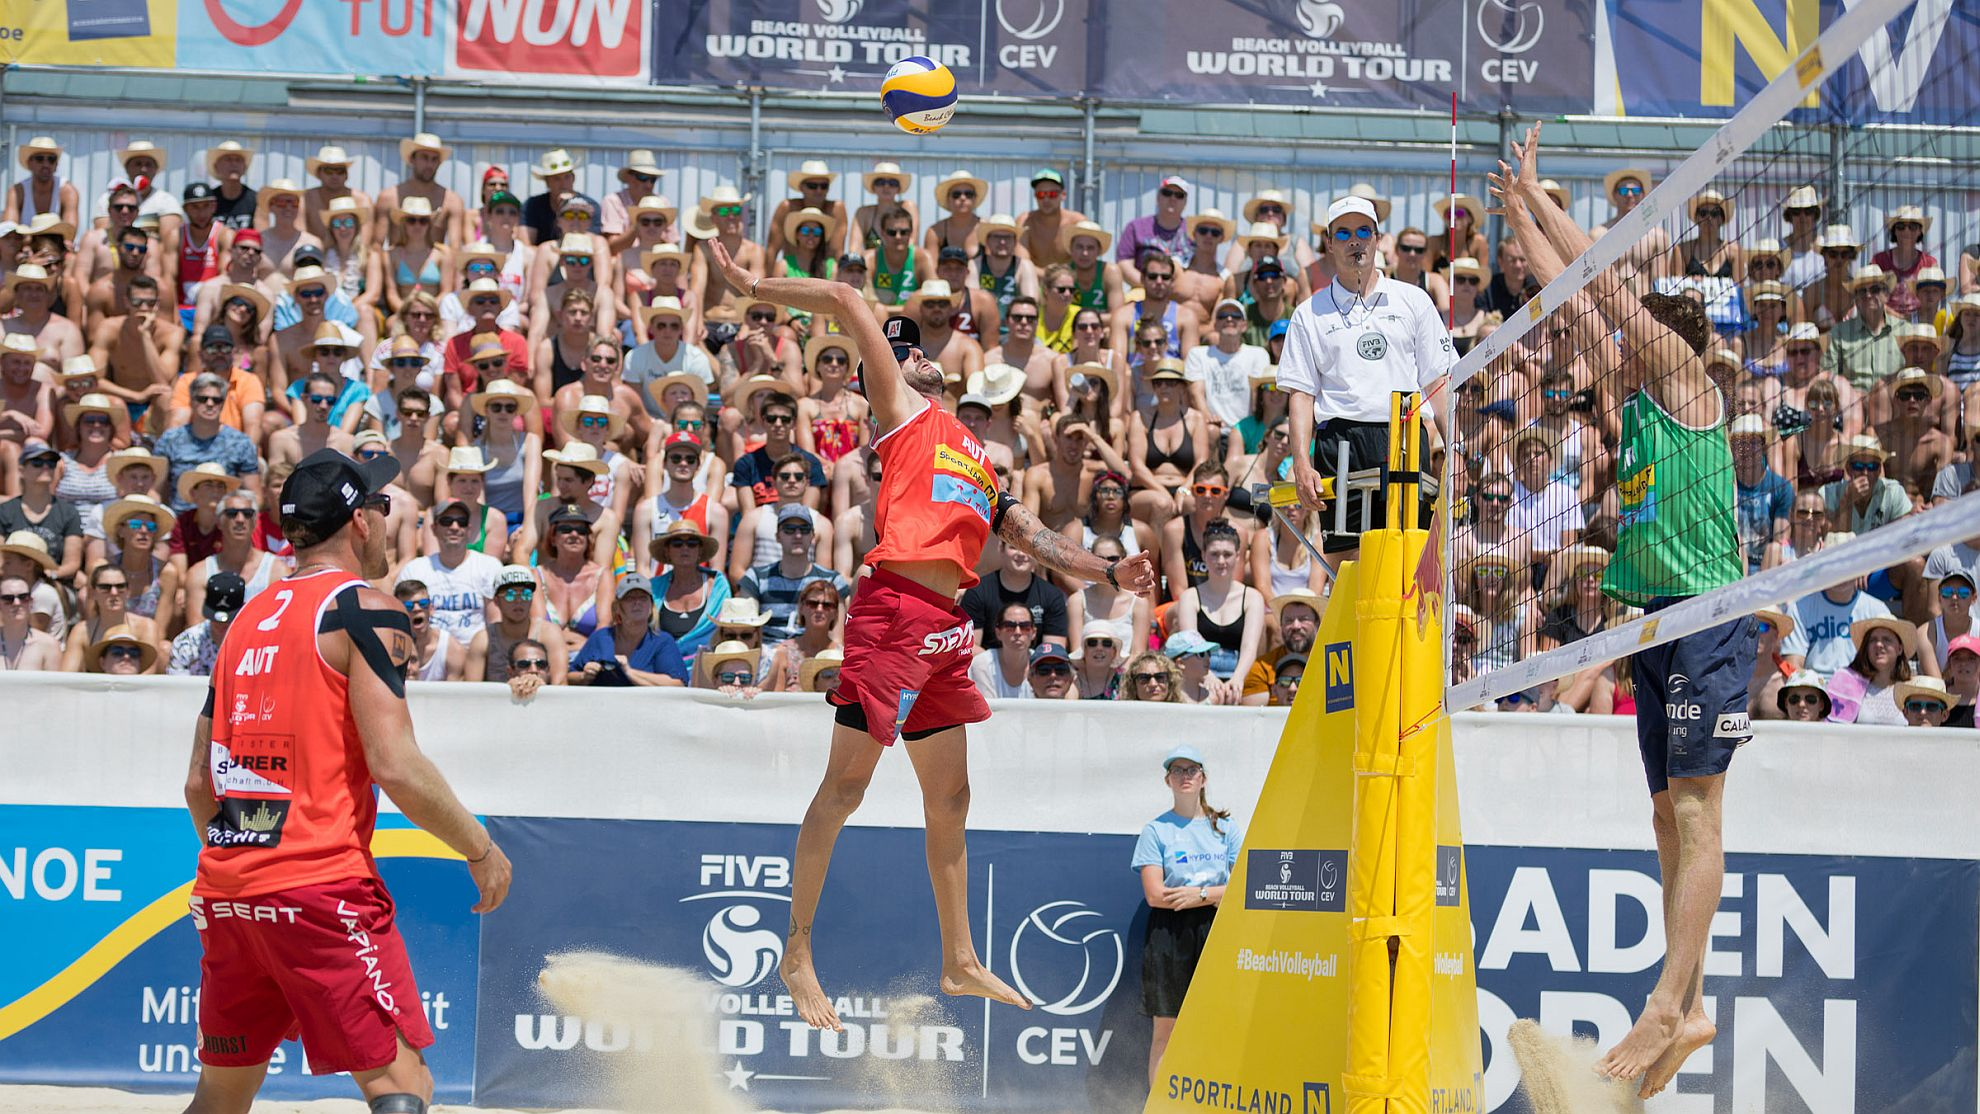 FIVB World Tour Baden Open 2018 - FOTO © Rainer Mirau